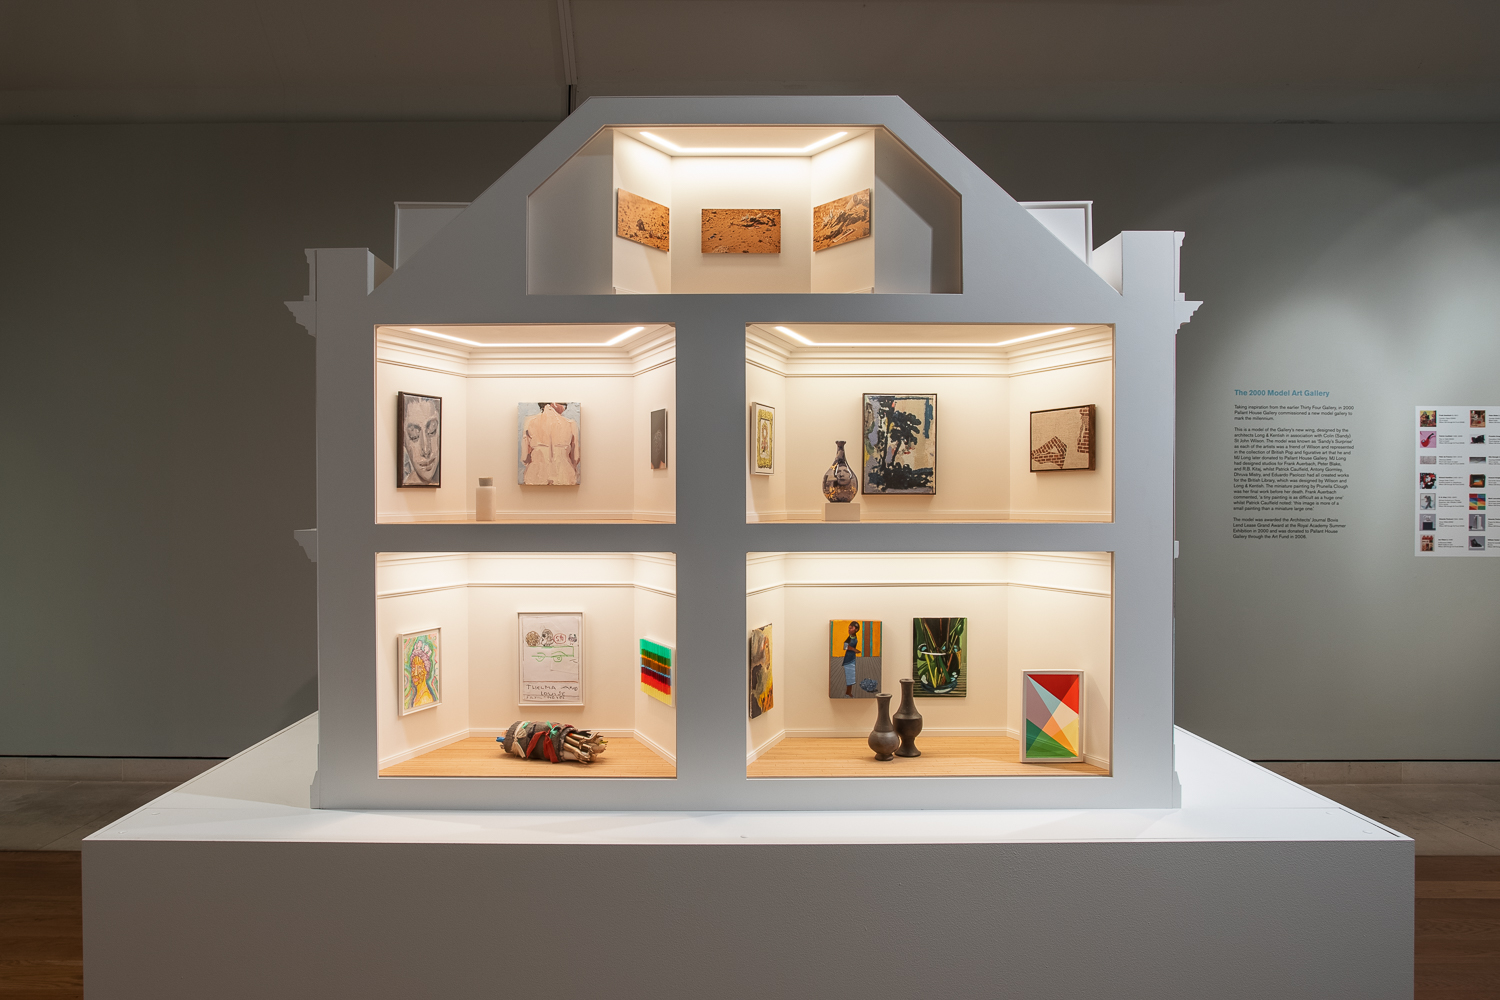 Lubaina Himid in 'Masterpieces in Miniature: The 2021 Model Art Gallery', Pallant House Gallery, 26 June 2021 – Spring 2022